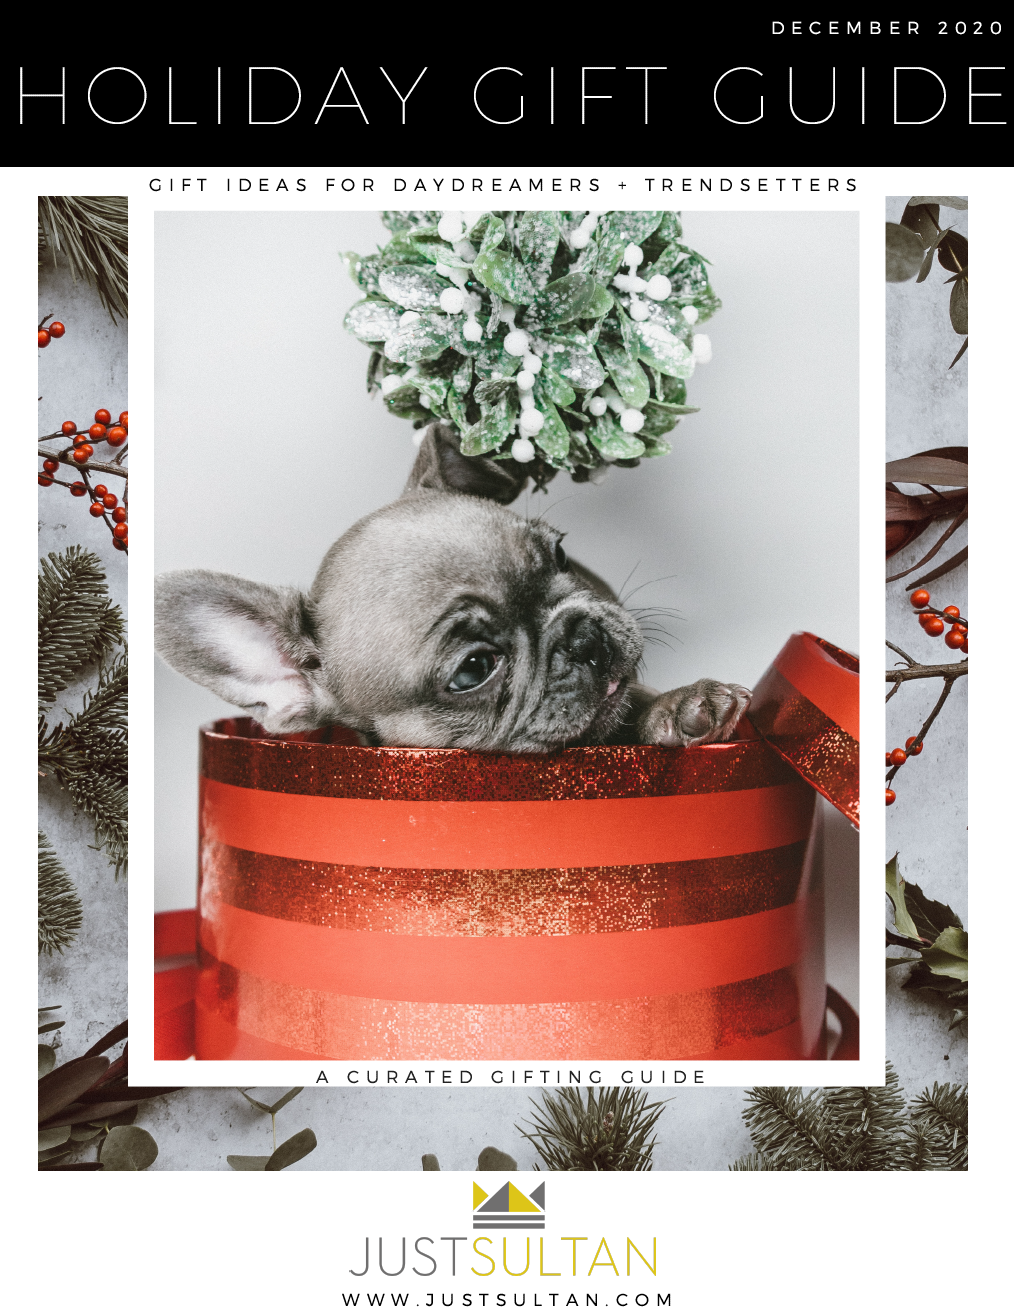 Just Sultan Holiday Gift Guide 2020